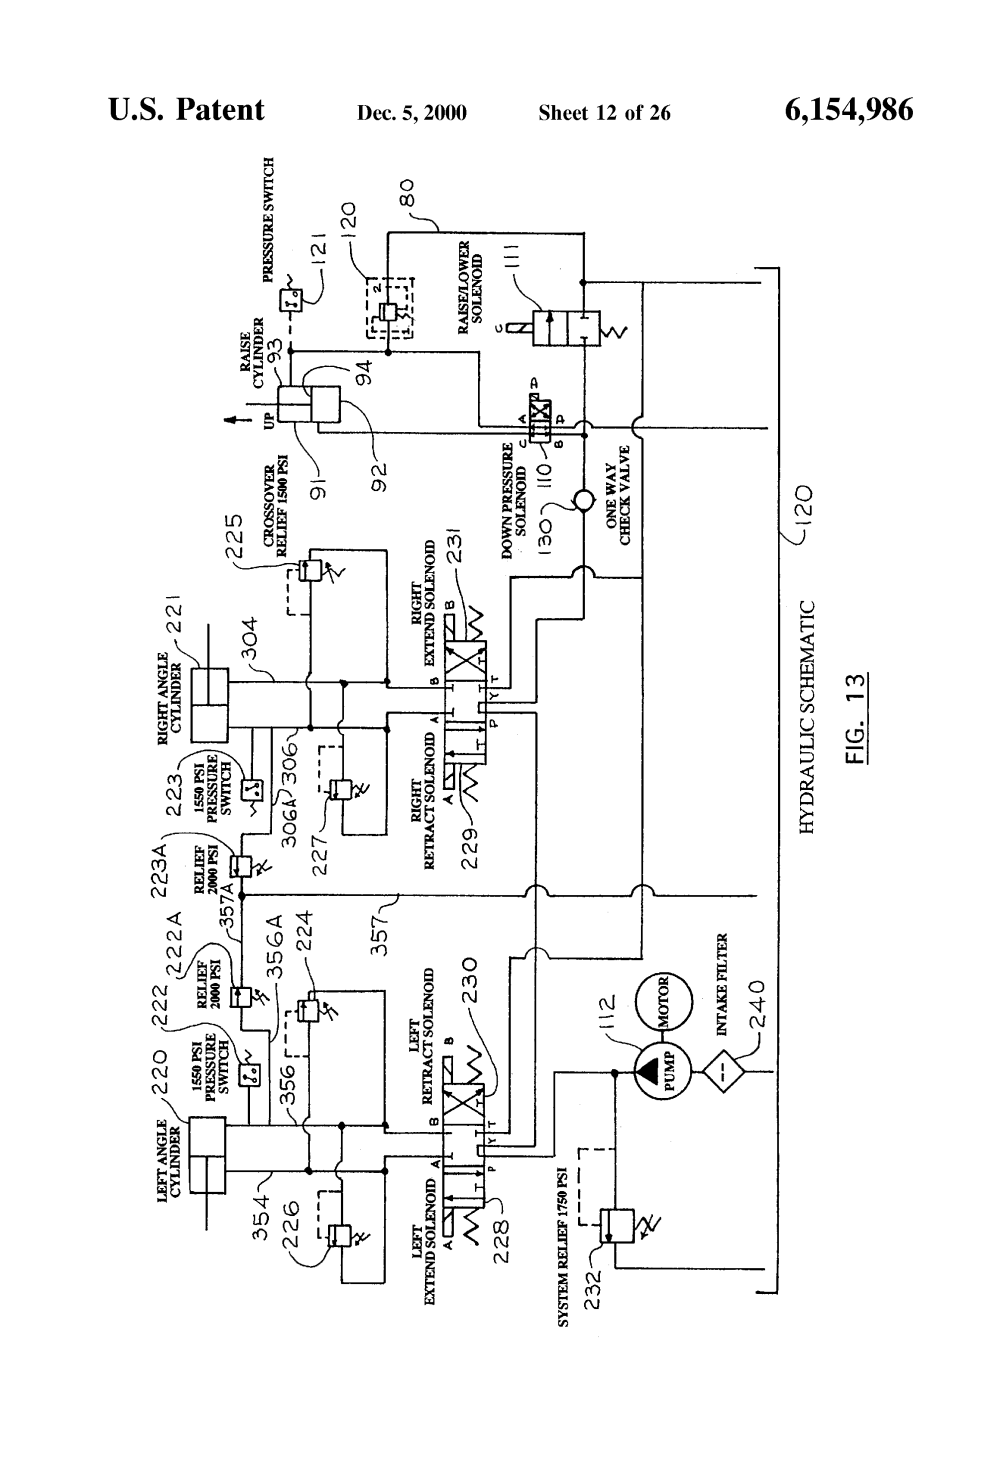 medium resolution of us6154986 12 patent us6154986 articulated snowplow system google patents sno way wiring diagram at